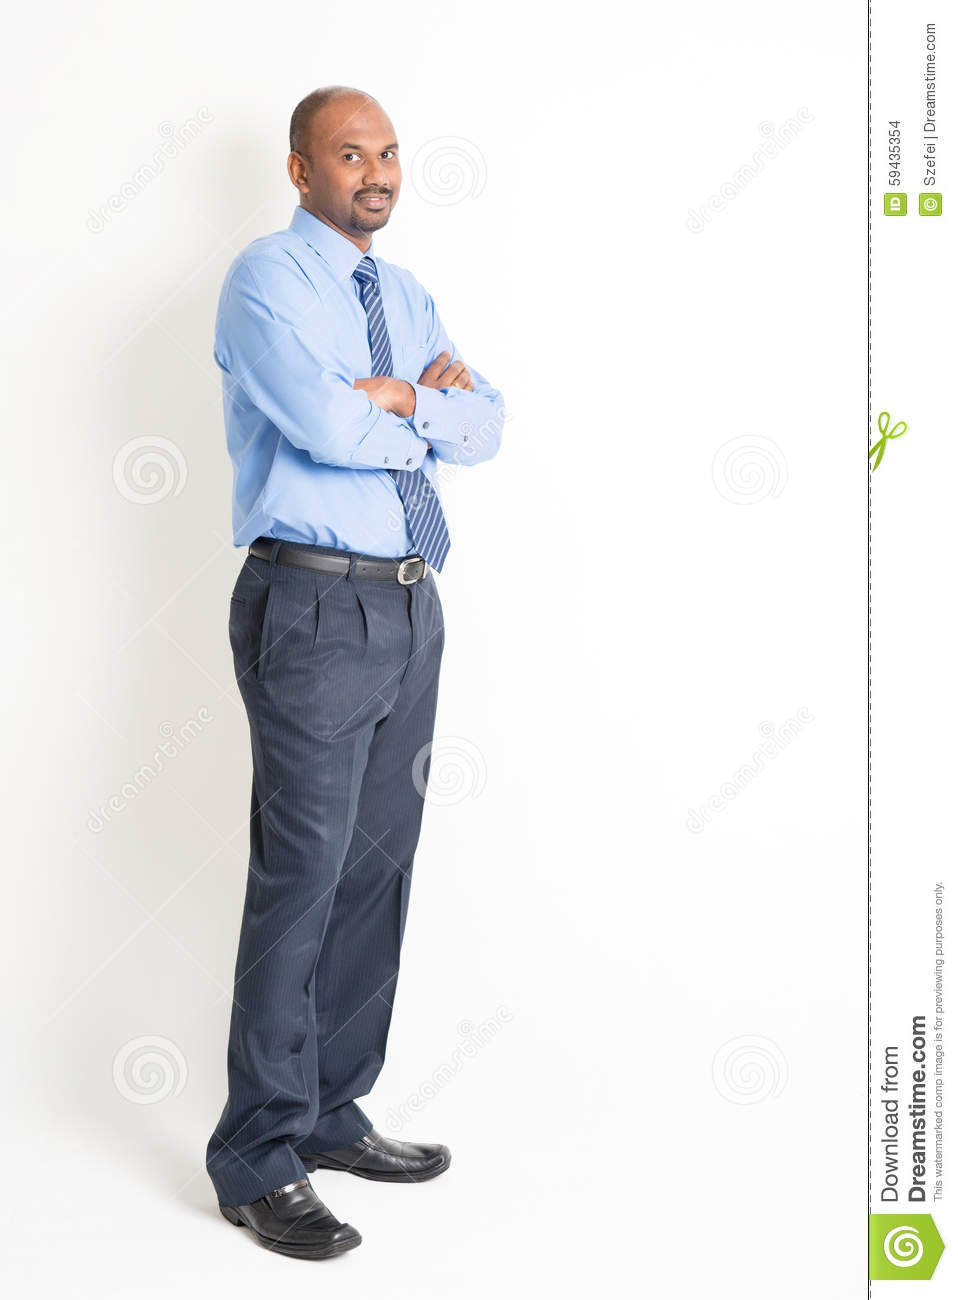 Full body confident mature Indian man executive